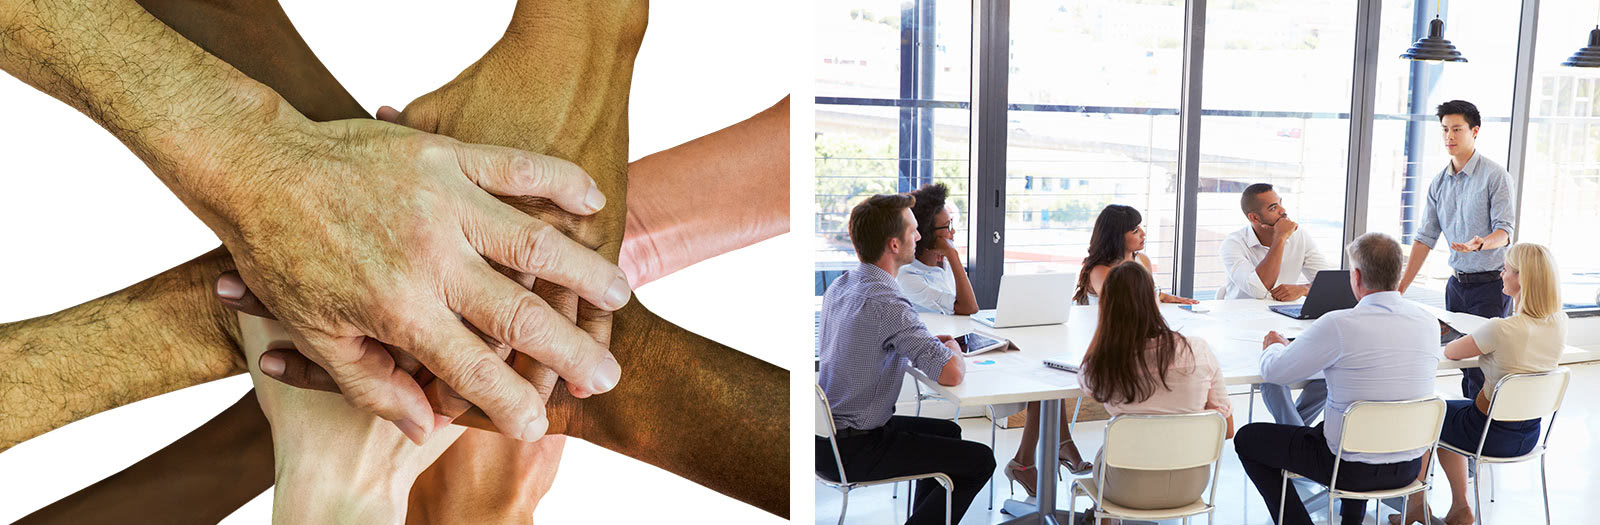 Multicultural hands in a huddle versus a multicultural team sitting around a table.